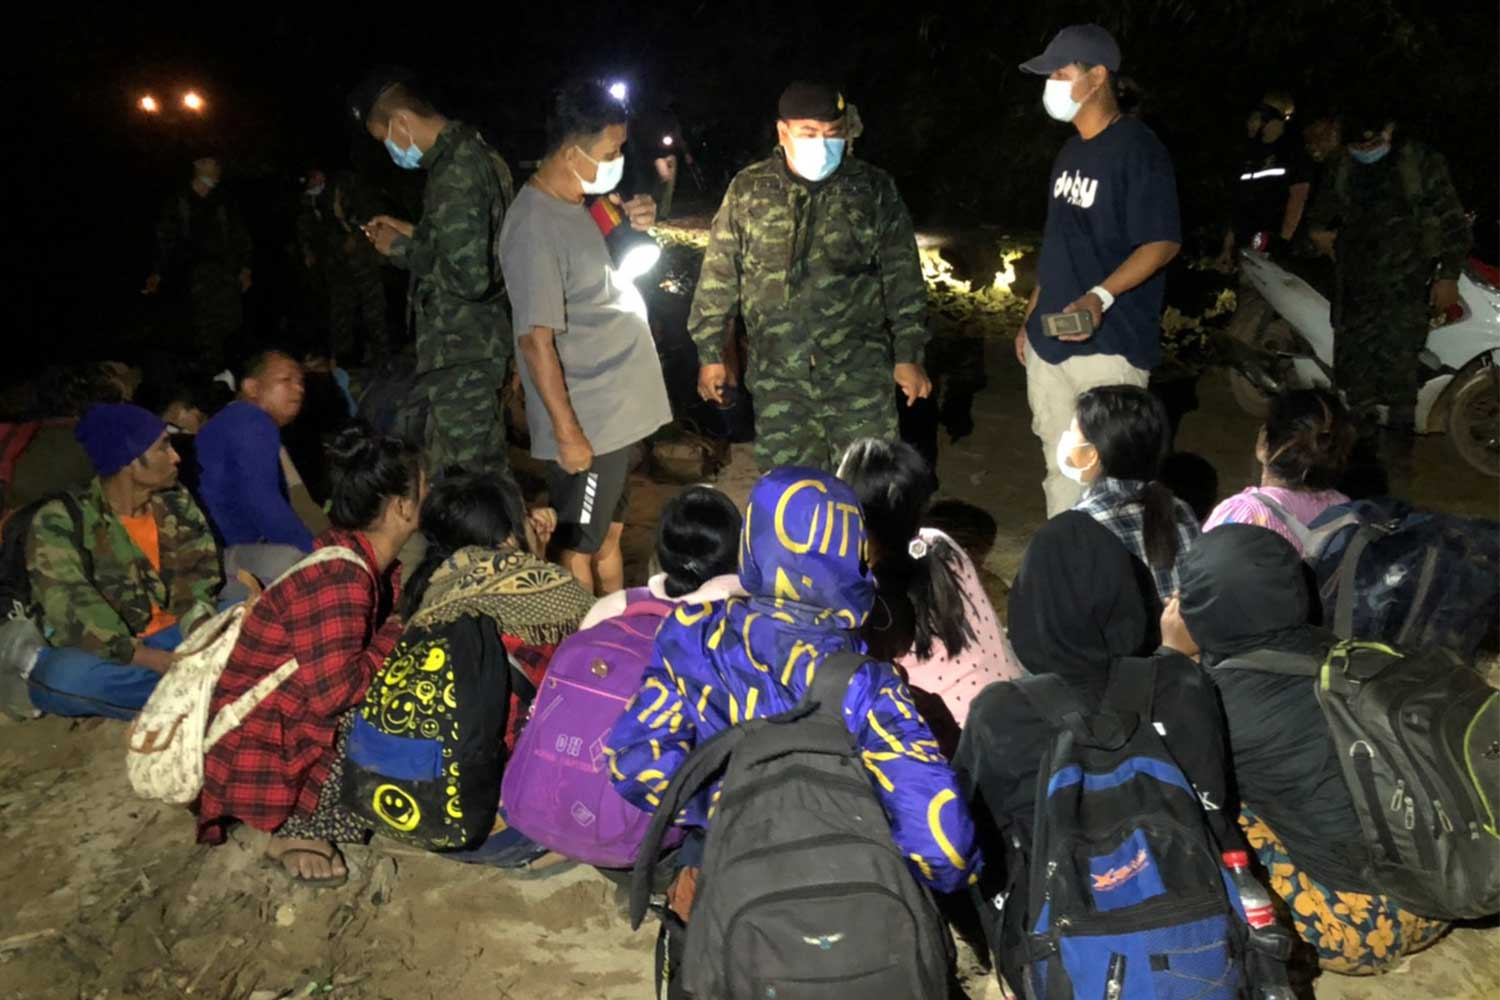 33 Myanmar migrants found in forest